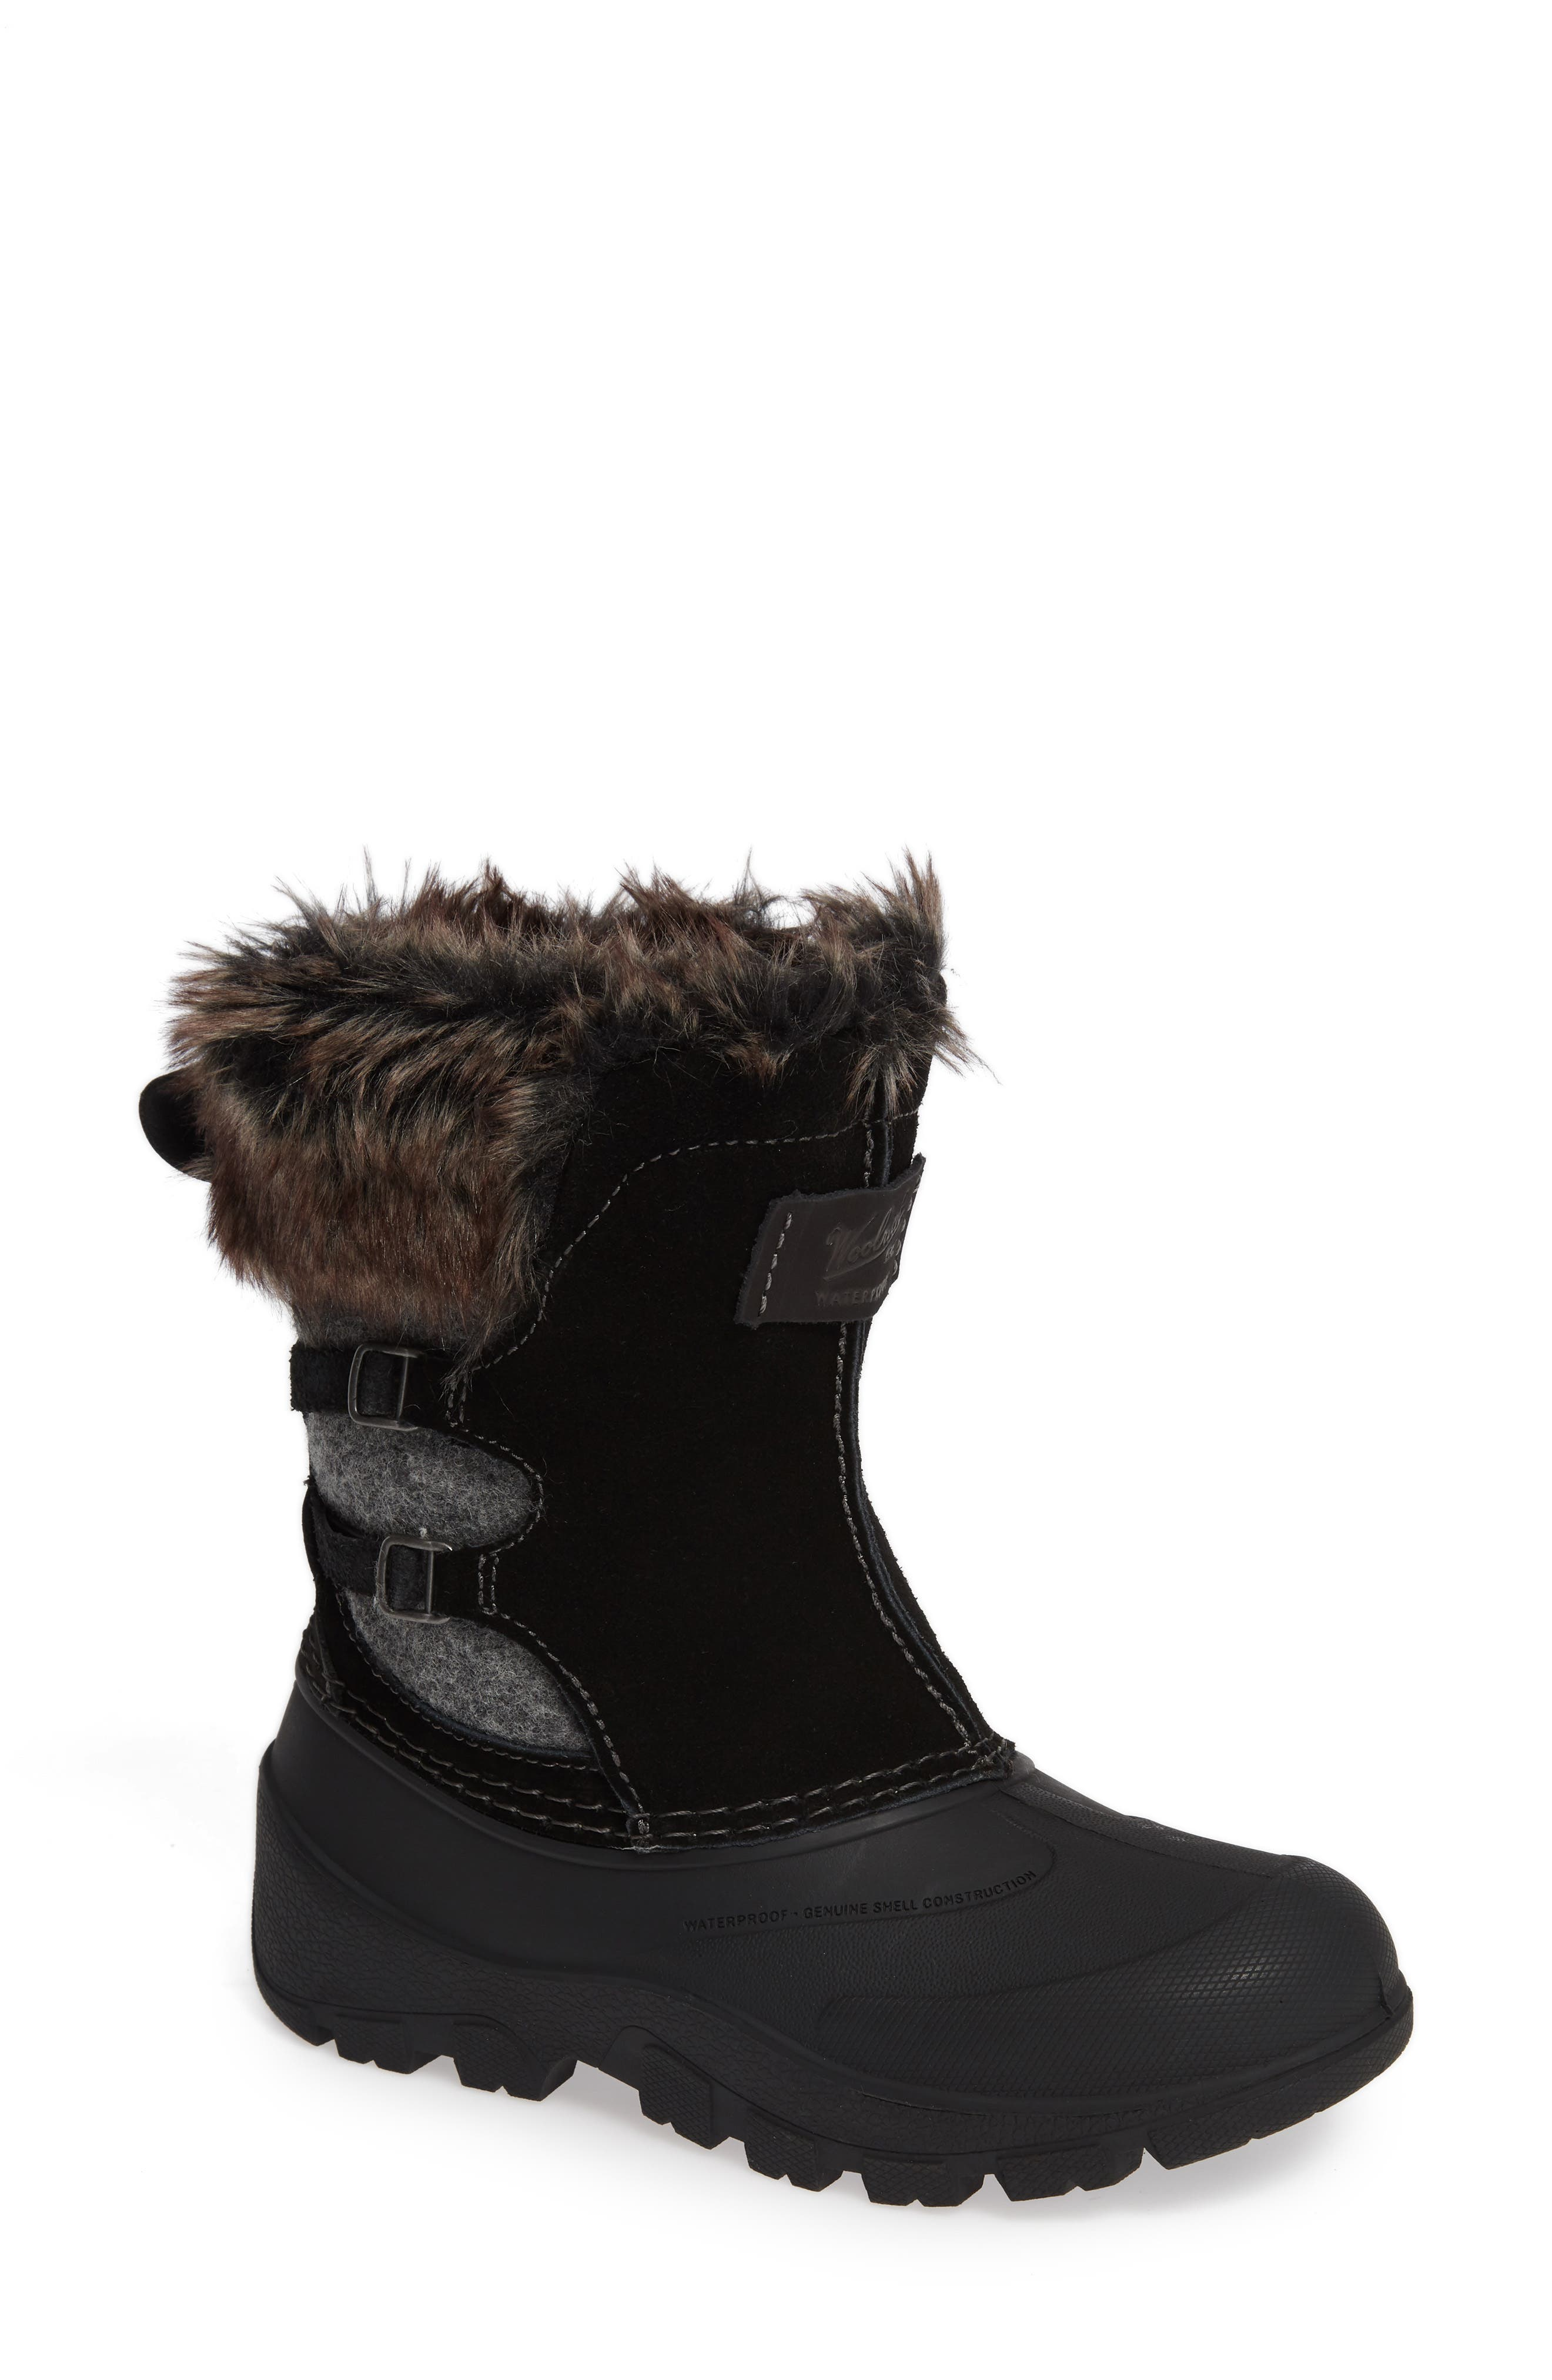 Woolrich Icecat Ii Fully Wooly Waterproof Insulated Winter Boot, Black